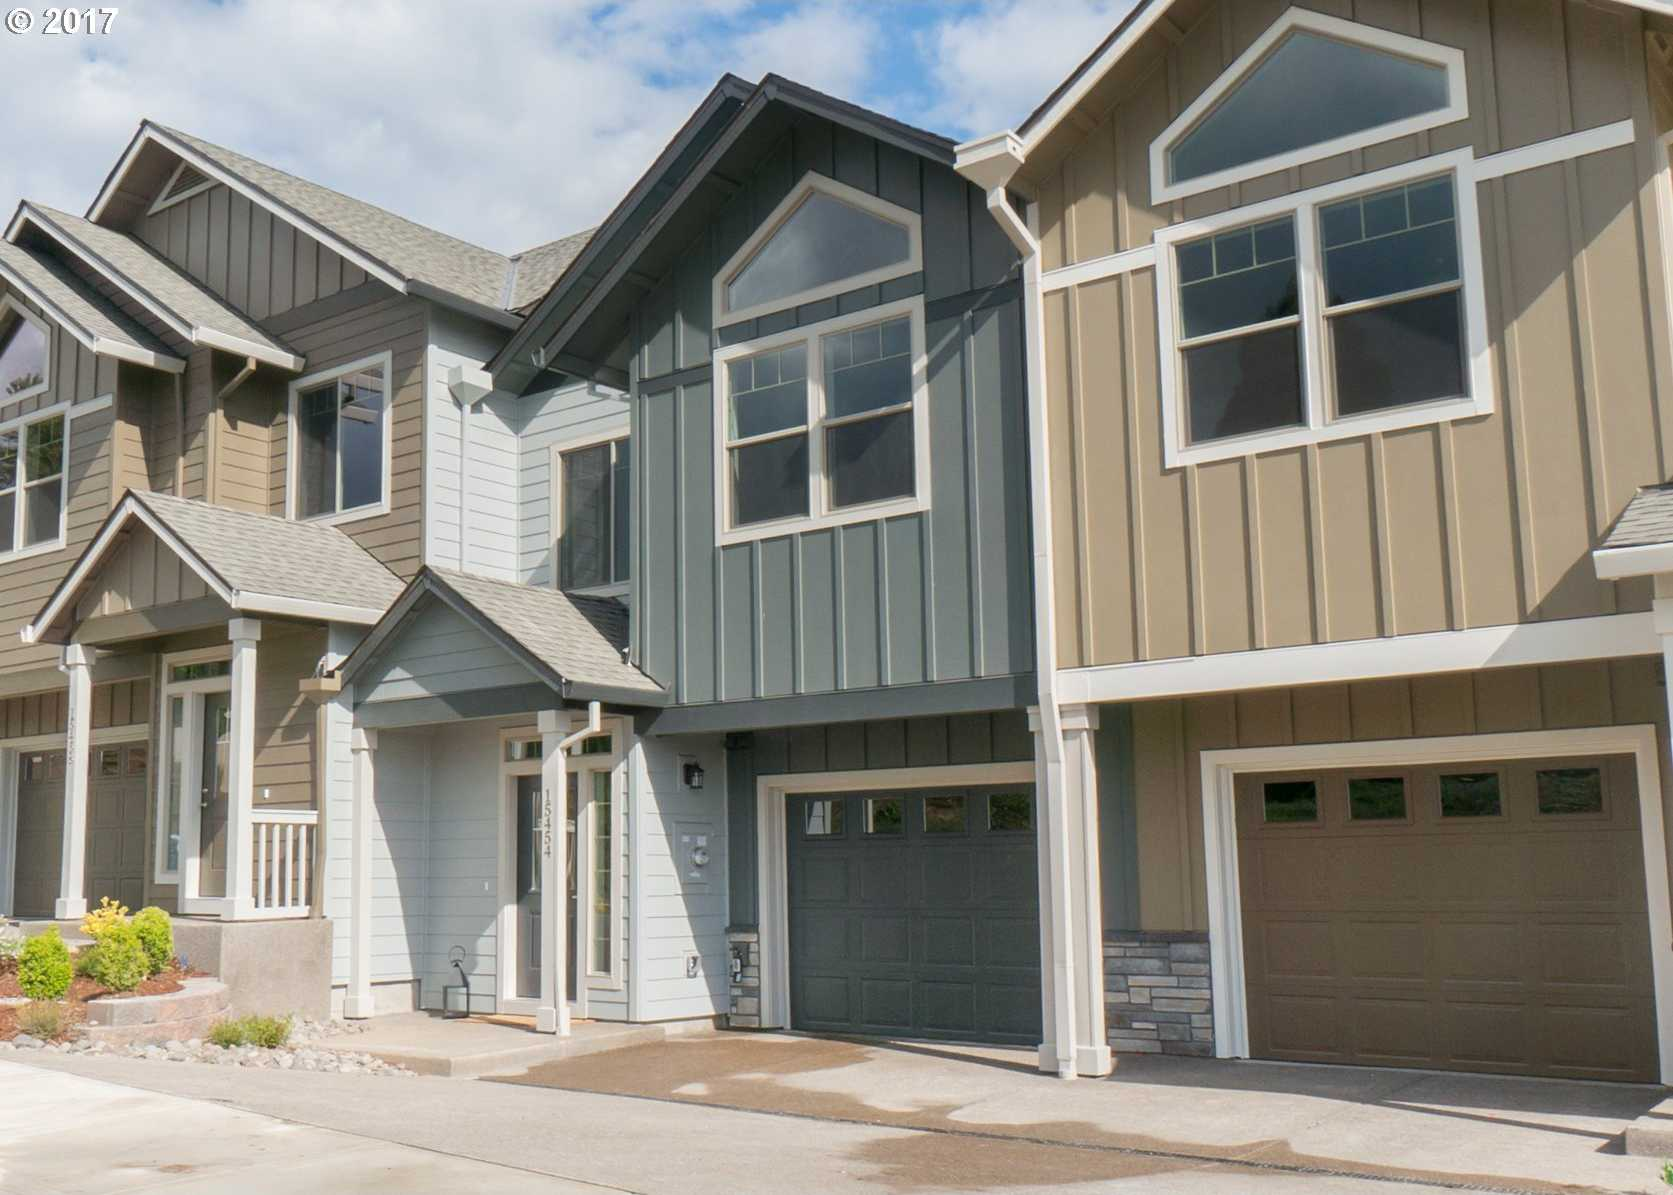 $345,000 - 3Br/3Ba -  for Sale in Crest View Townhomes, Happy Valley